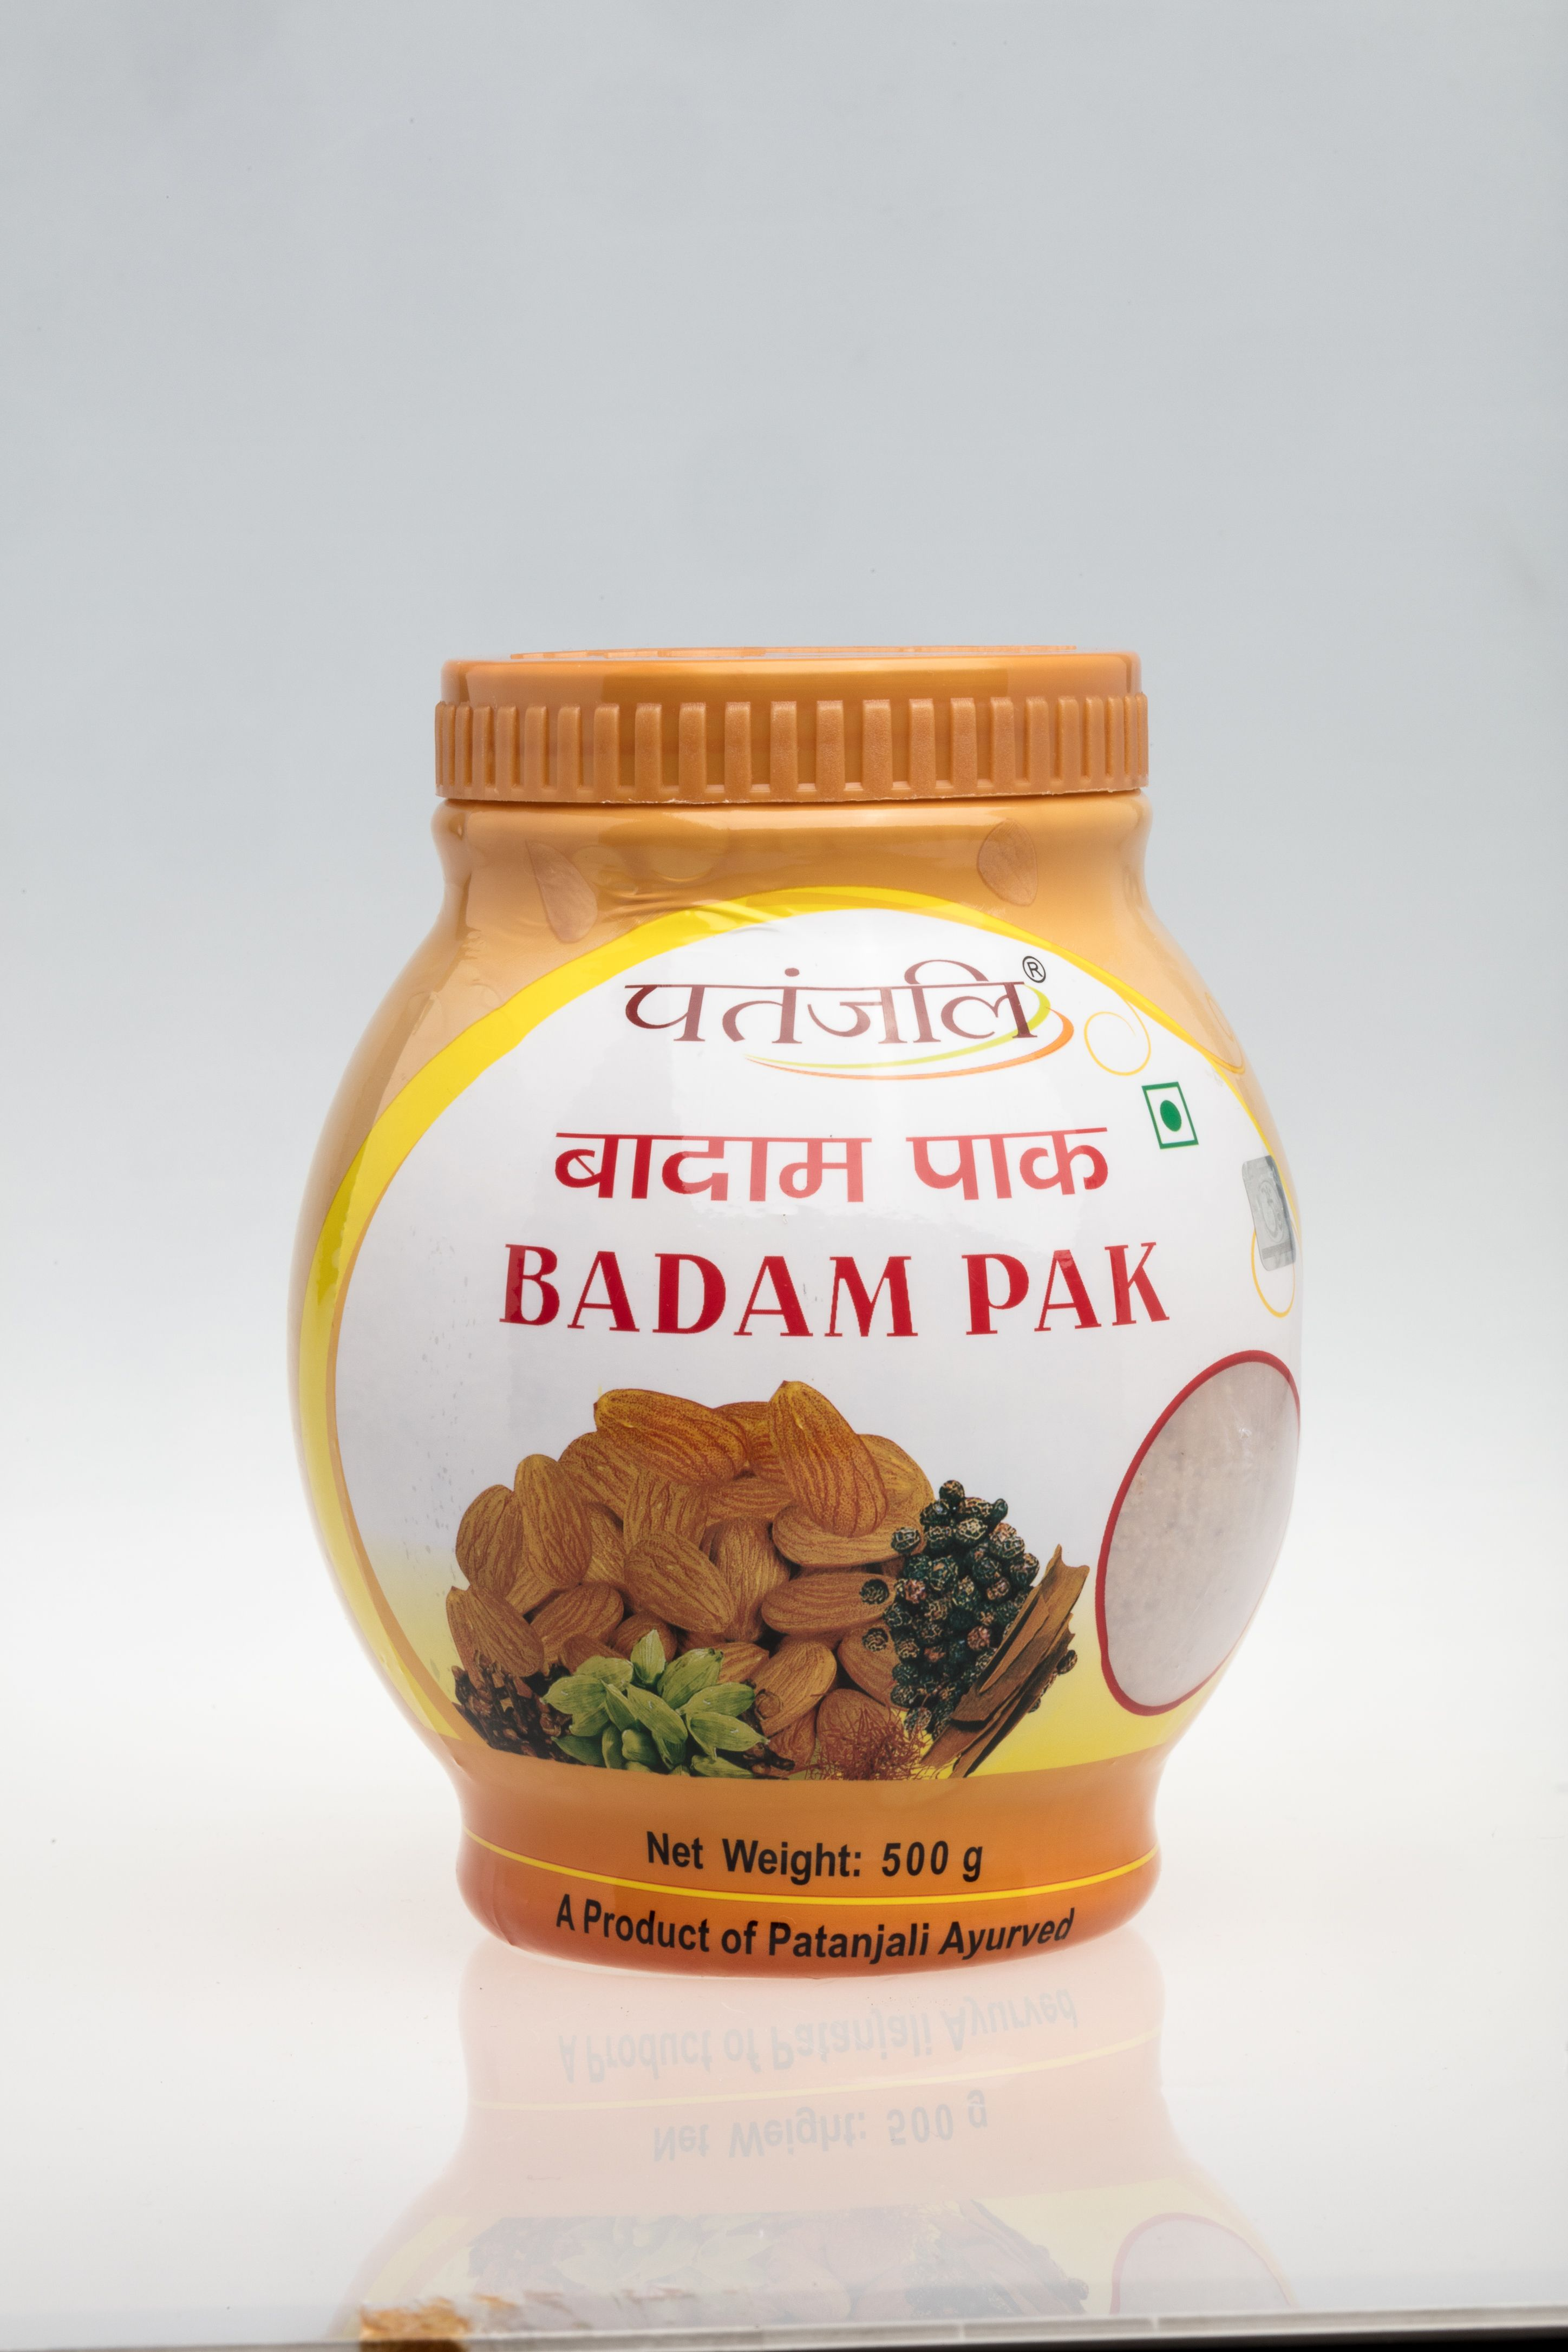 Patanjali badam pak is a rich source of vitamin E and other